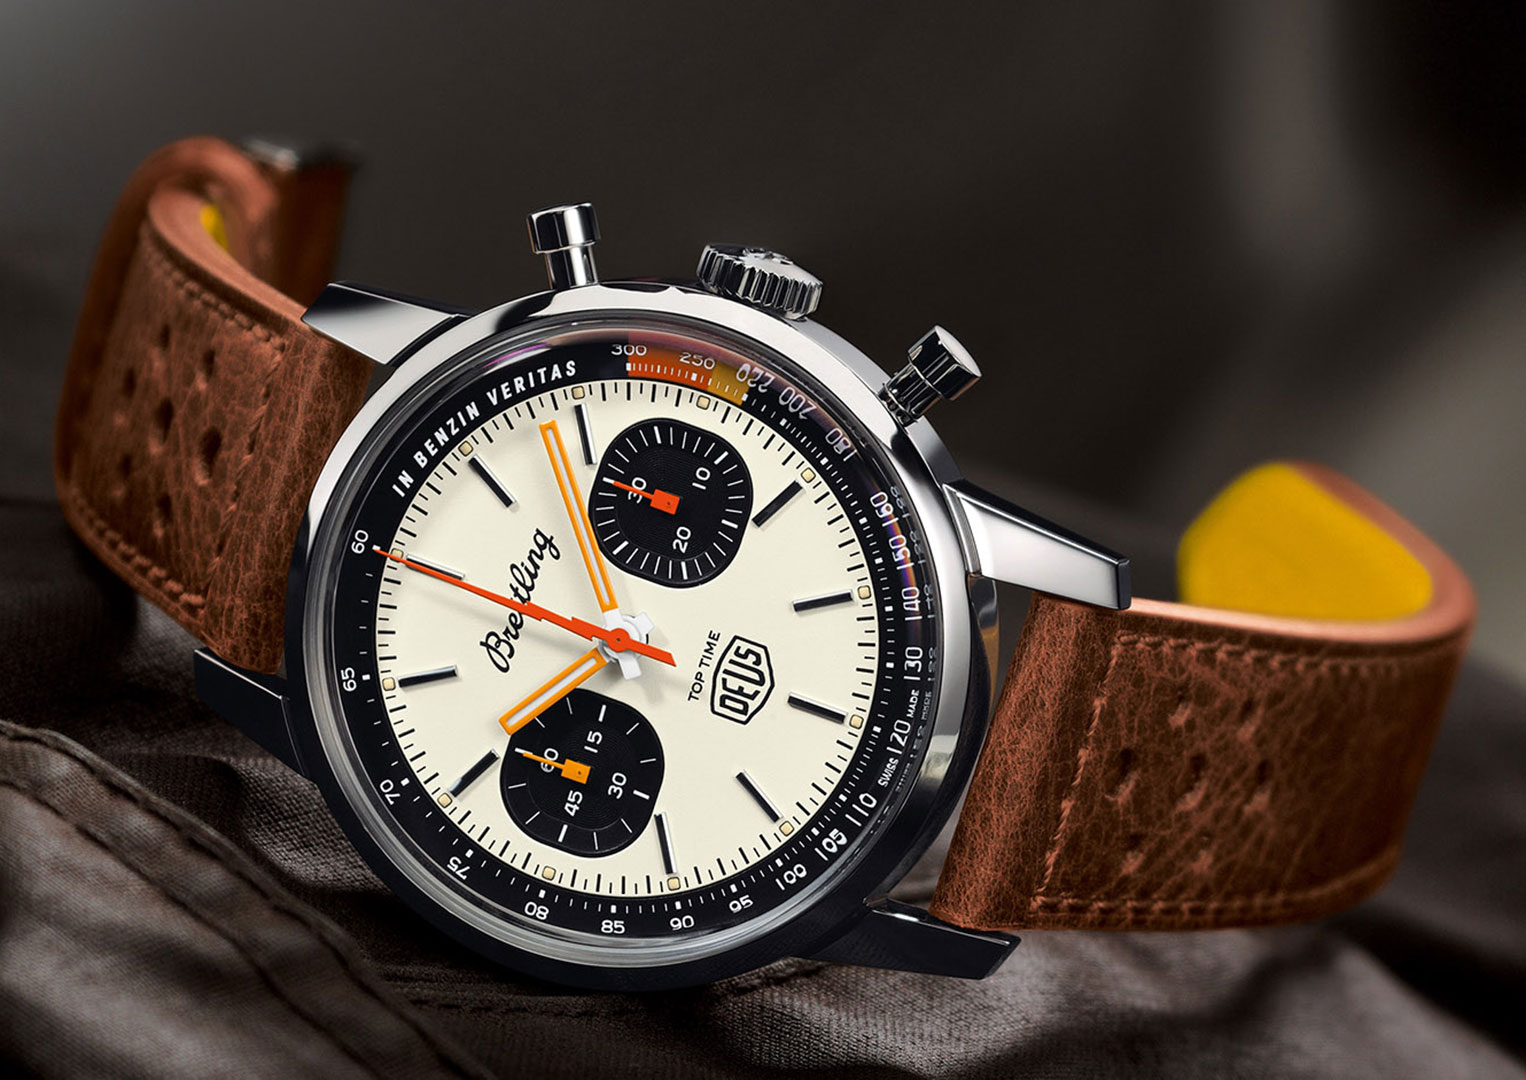 The Breitling Top Time Deus Chronograph is limited to 1500 pieces)